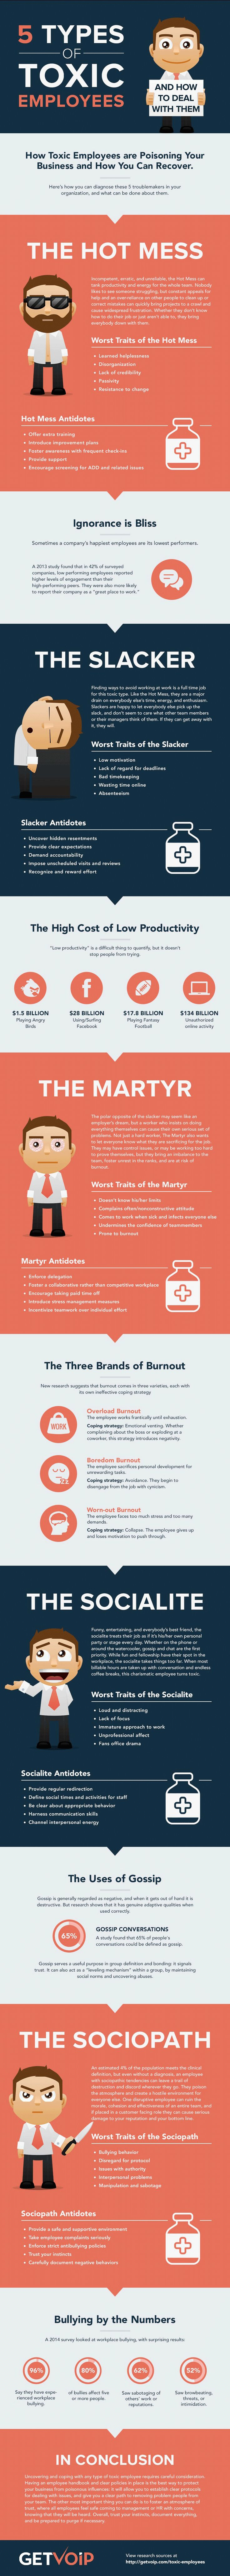 How to Cope With 5 Toxic Coworkers (Infographic)   Inc.com